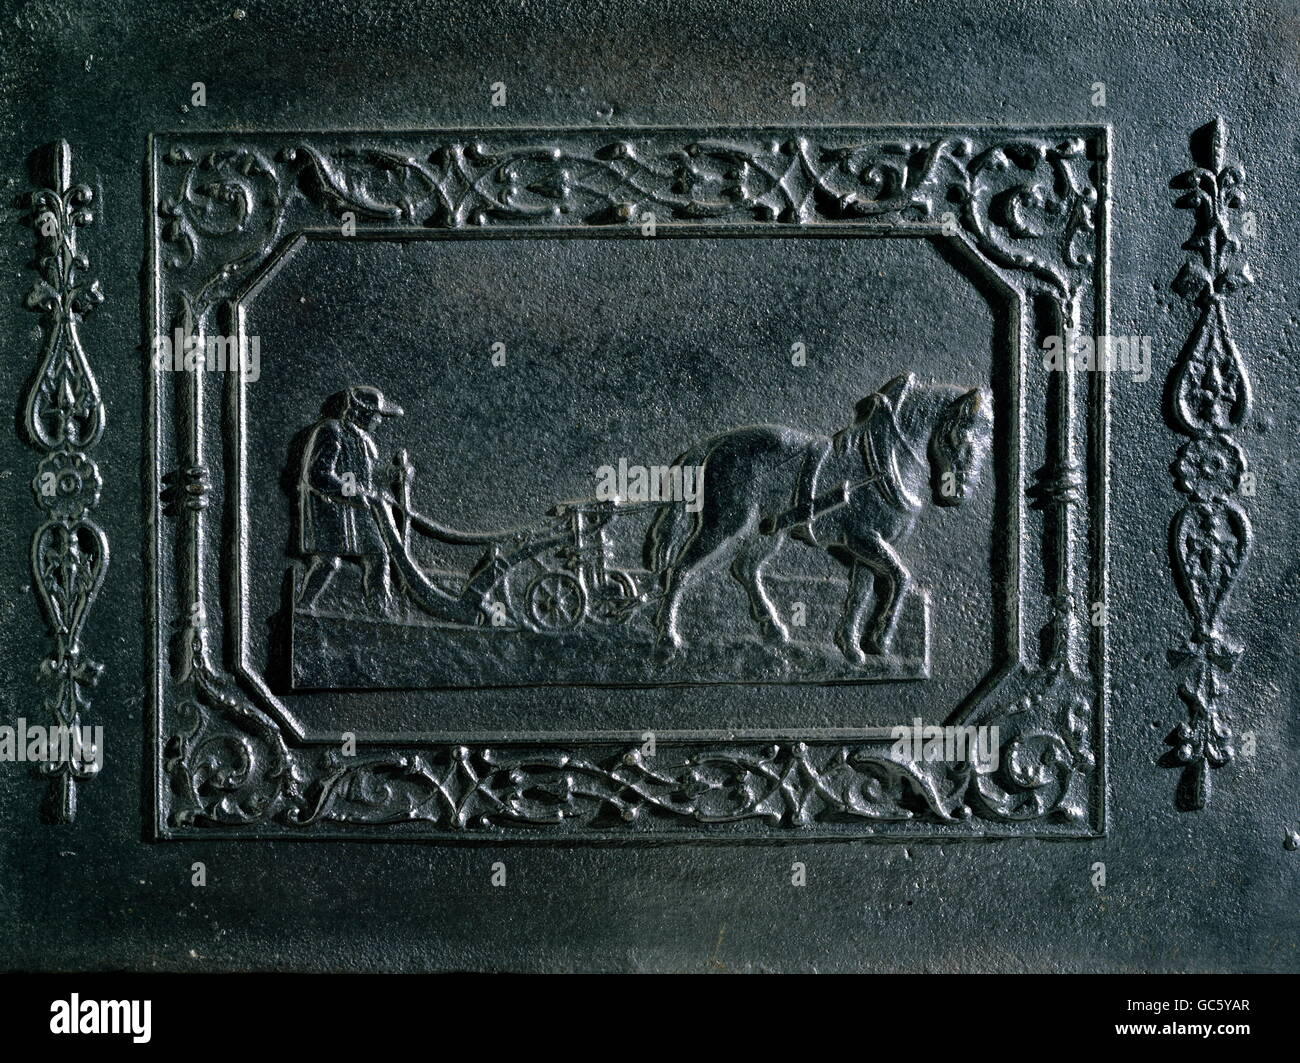 agriculture, farming, ploughing, farmer with plough, relief, cast iron, ironworks of Prince Bishop, Obereichstaett, - Stock Image